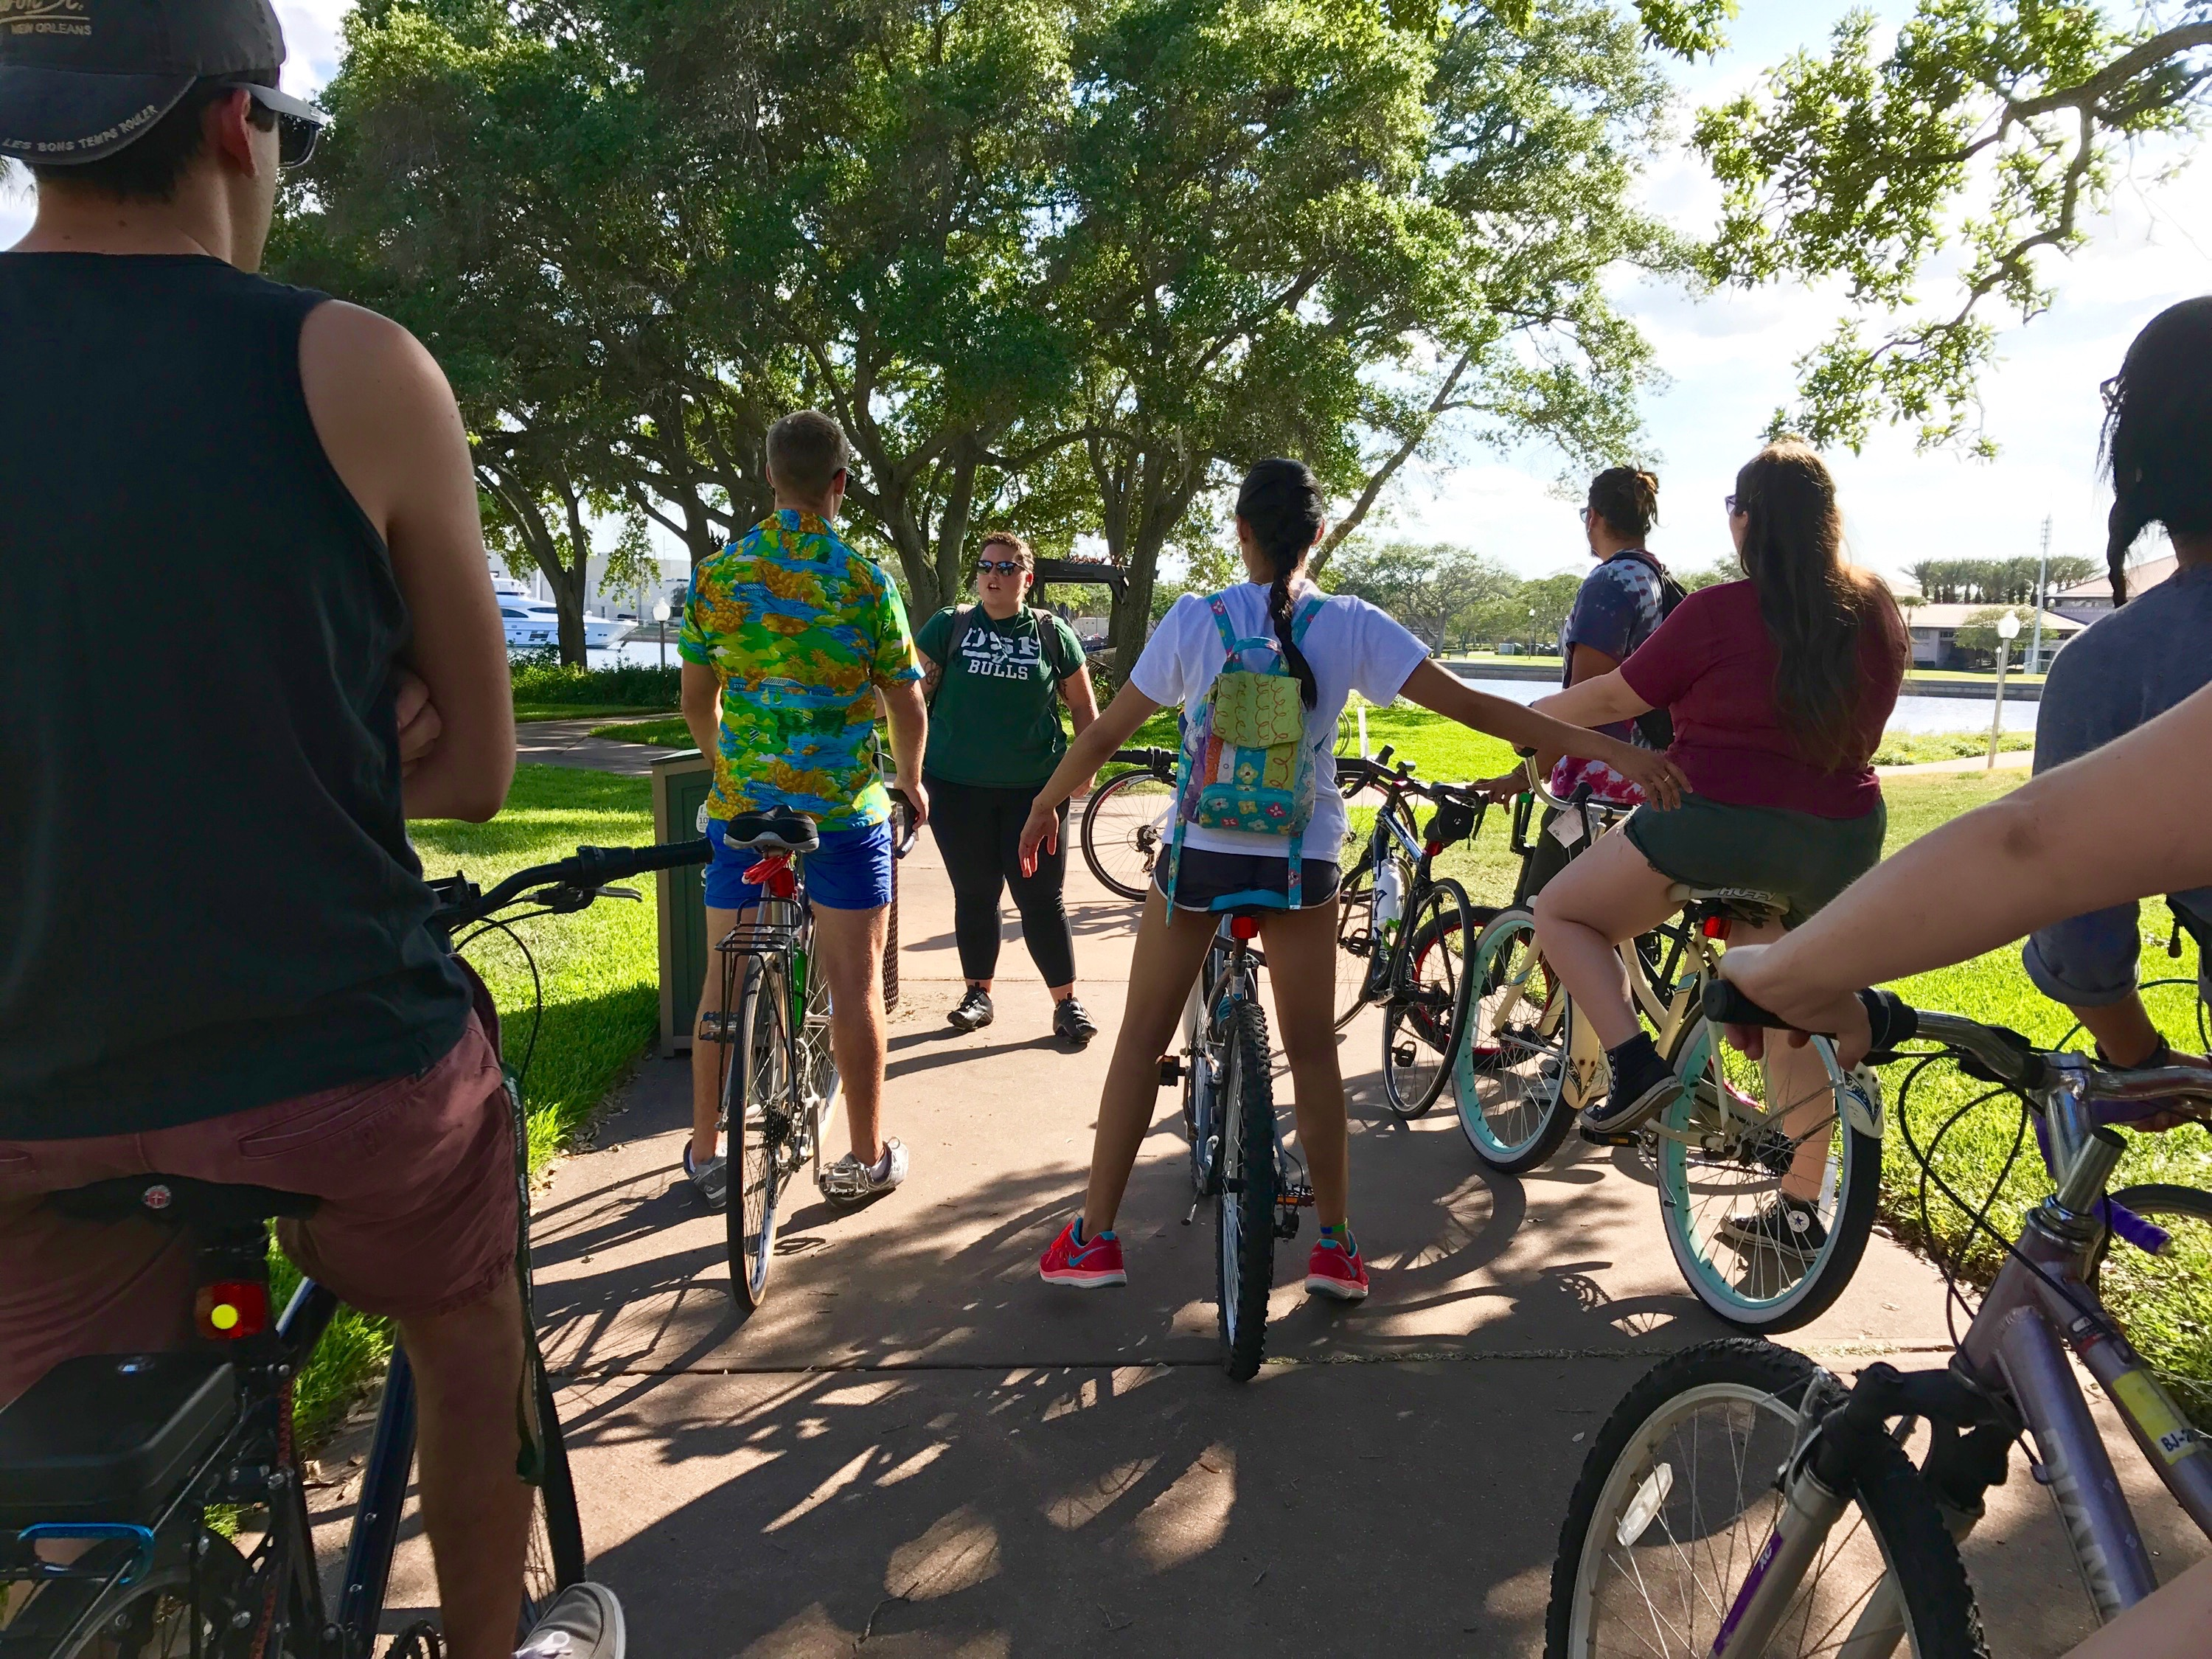 Gearing Up: Gabby Thornton directs a pack of bikers before a tour of downtown's murals. Courtesy of Kate Walker